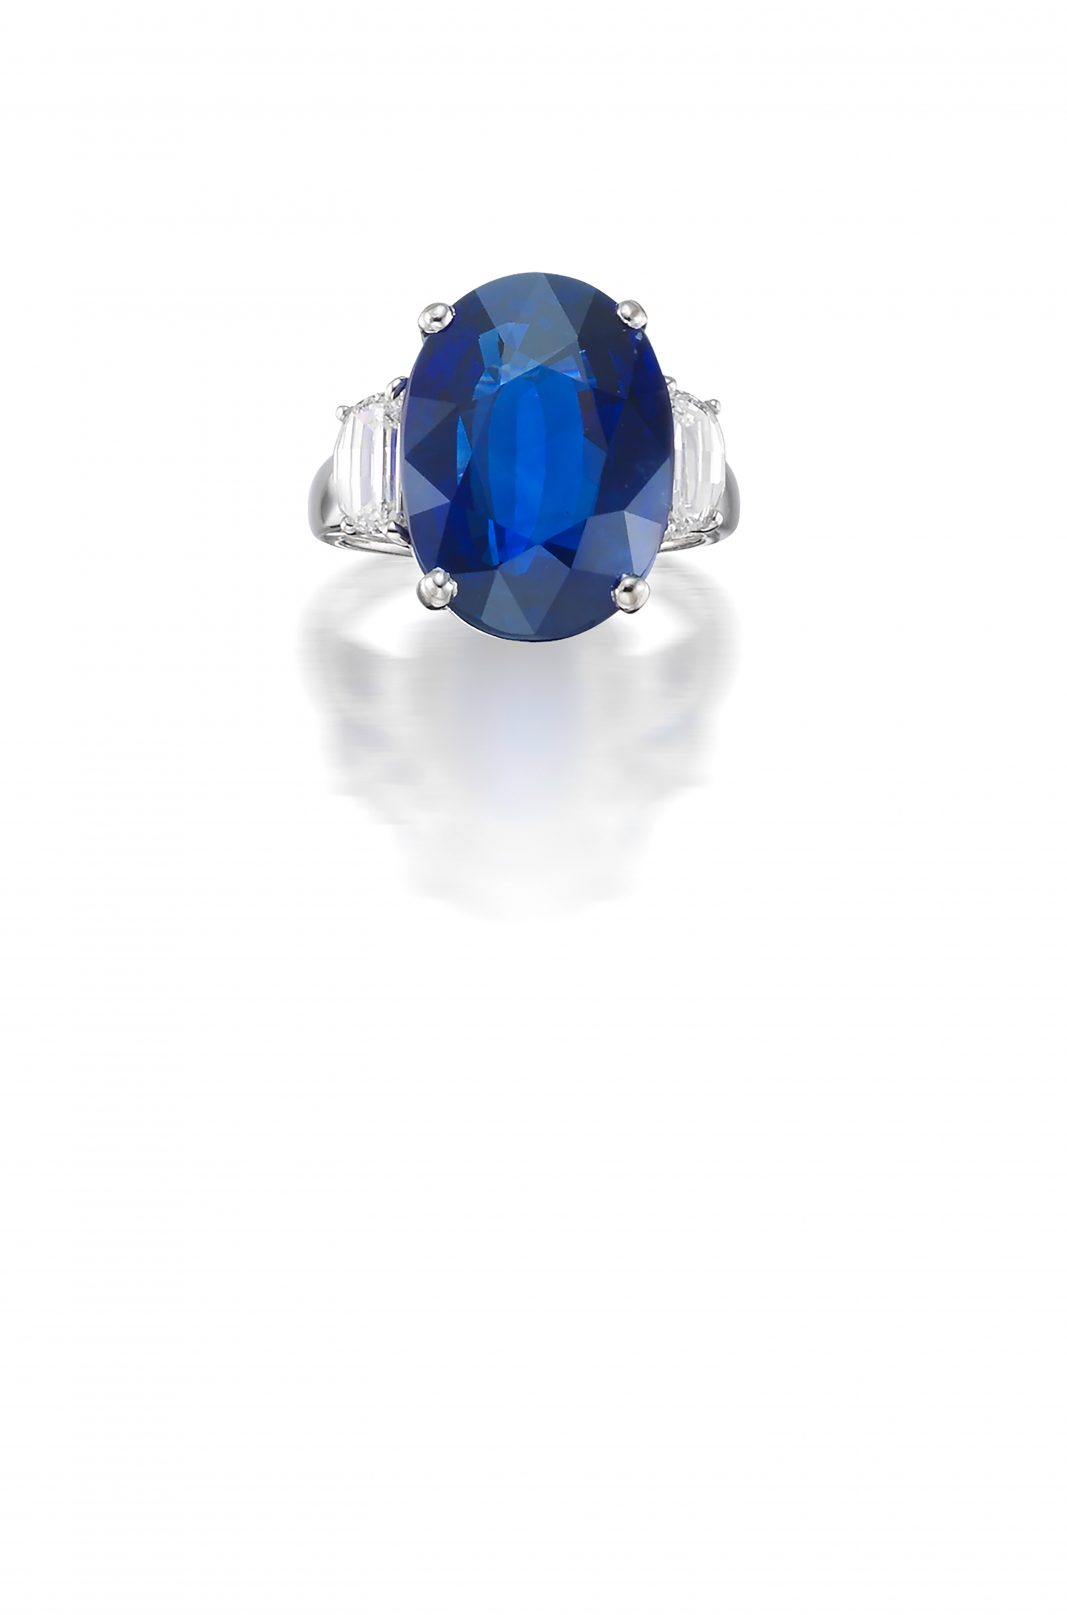 blog auction sapphires star top of at most ever burmese sapphire diamond and sold ring acution amazing the kashmir